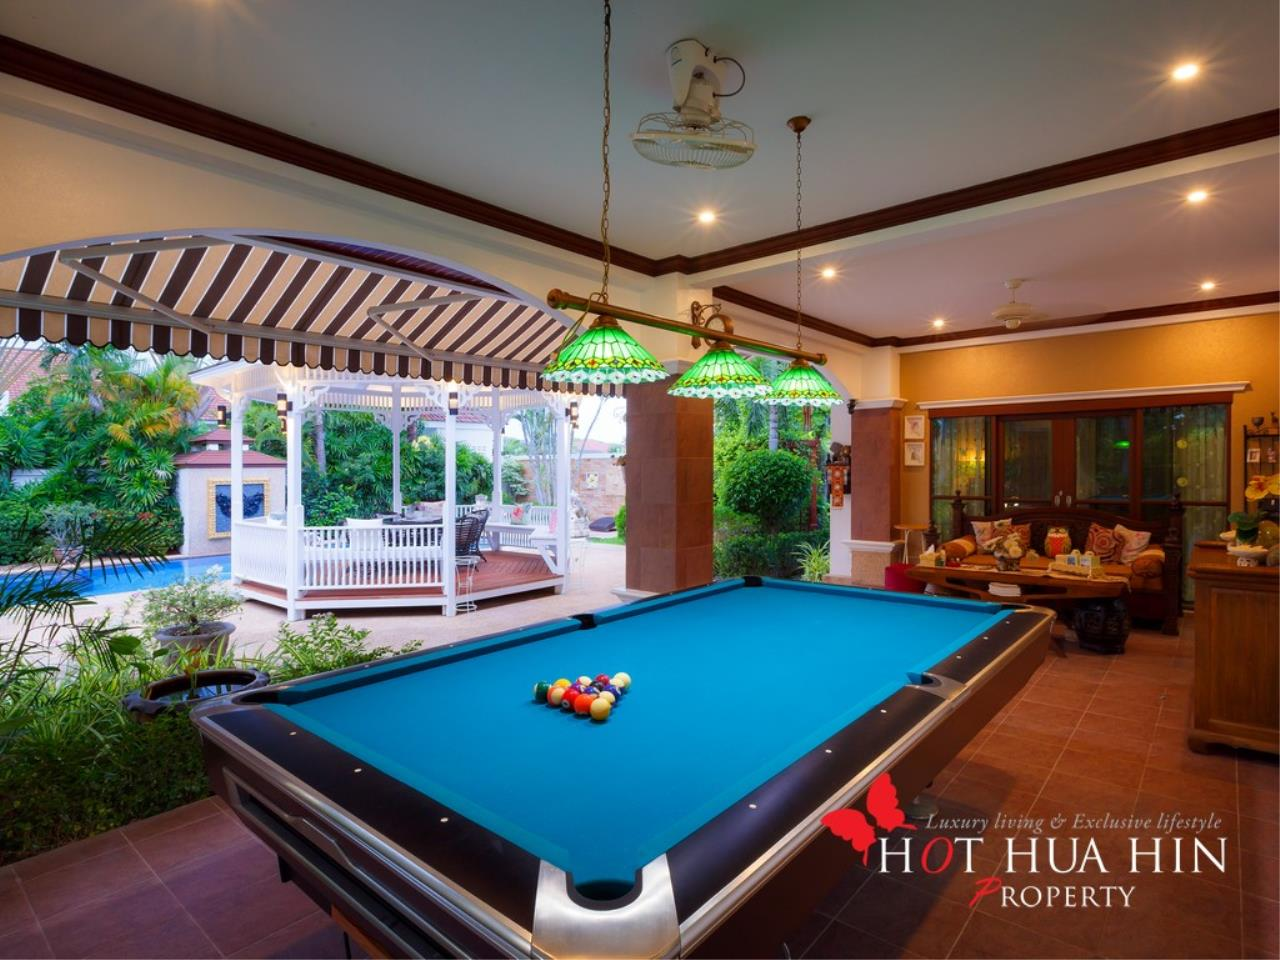 Hot Hua Hin Co. Ltd. Agency's Well Built Home With Stunning Gardens And Two Full Kitchens 5